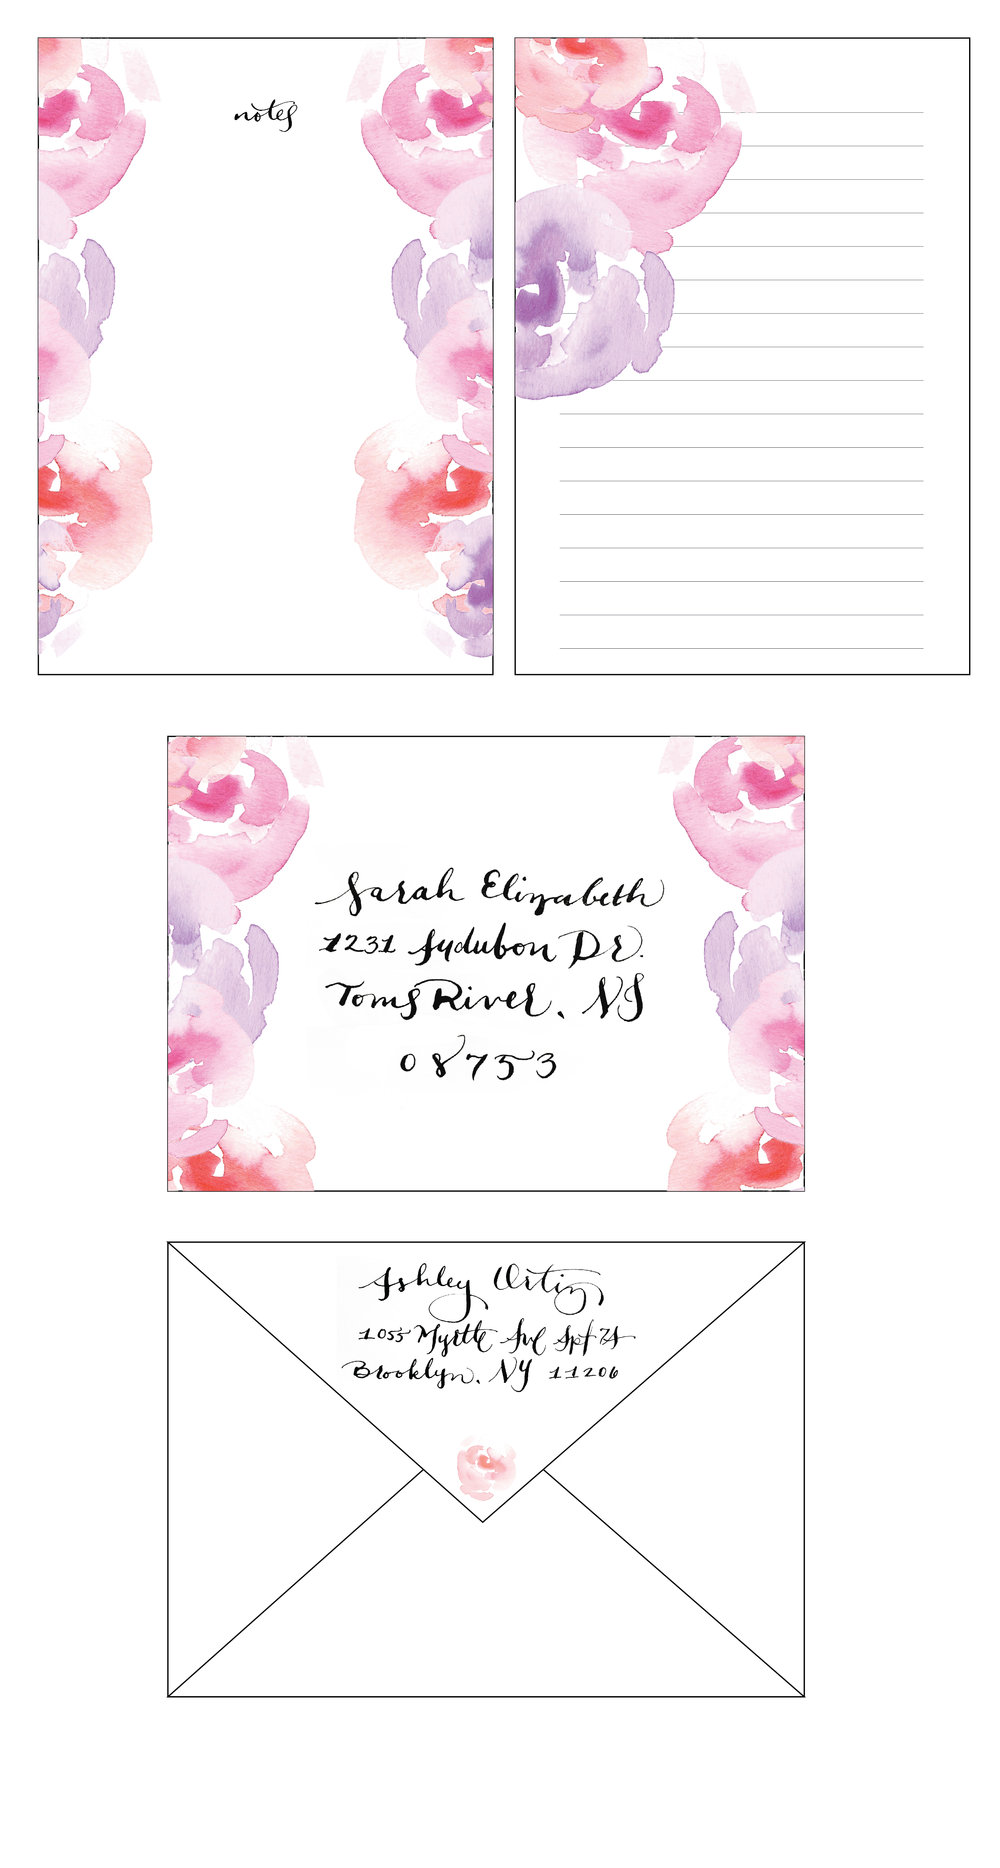 Watercolored, designed & calligraphed bespoke stationery set.